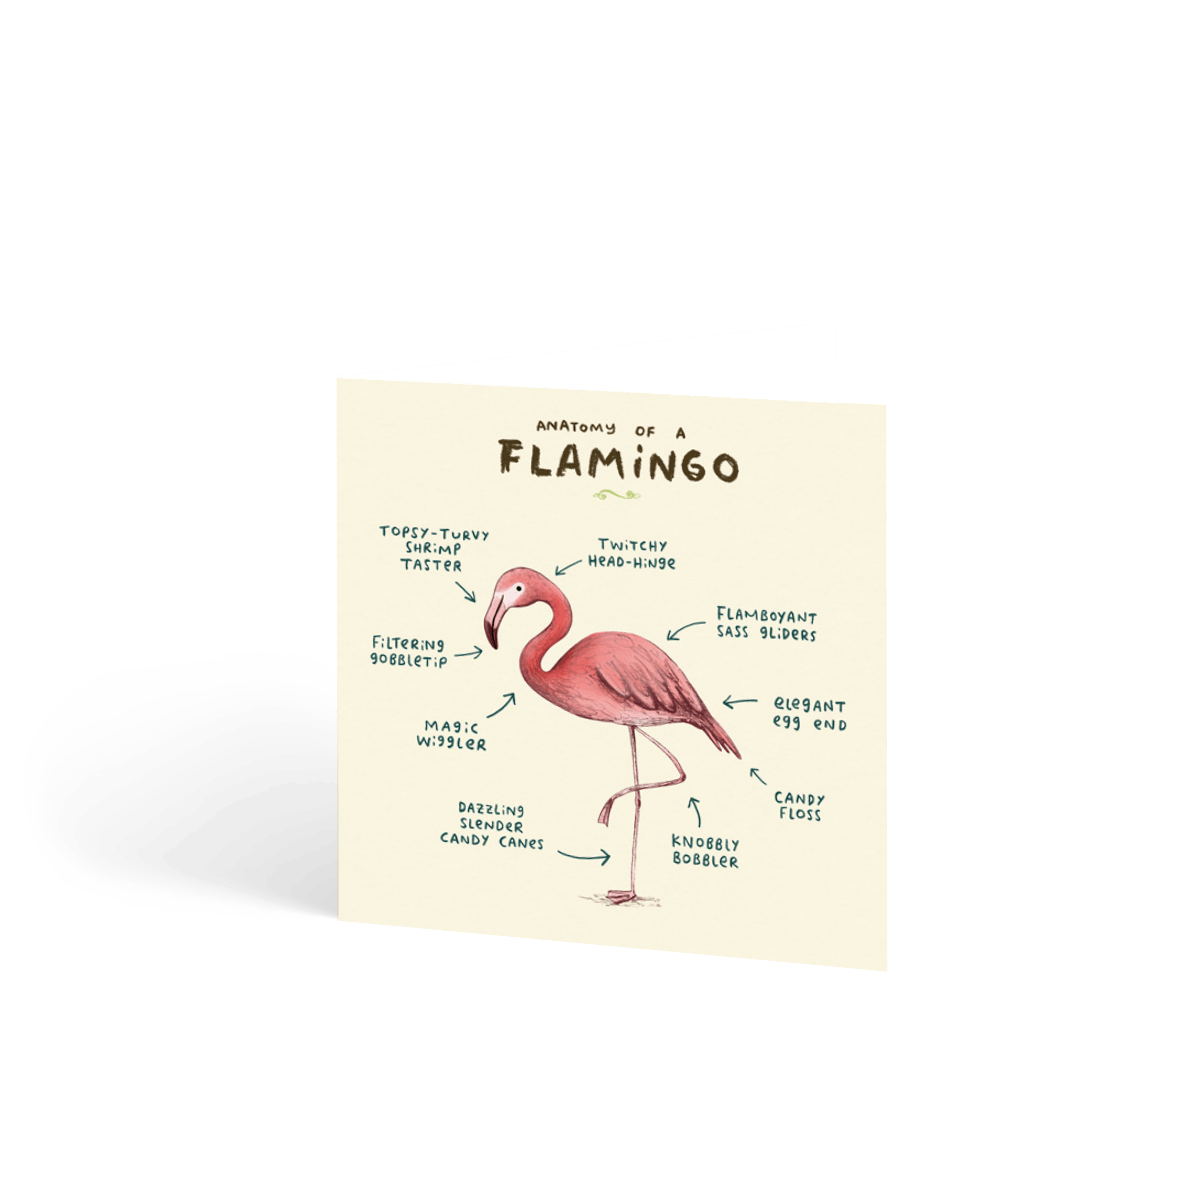 Https%3a%2f%2fwww.papier.com%2fproduct image%2f14648%2f16%2fanatomy of a flamingo 3902 front 1480677309.png?ixlib=rb 1.1